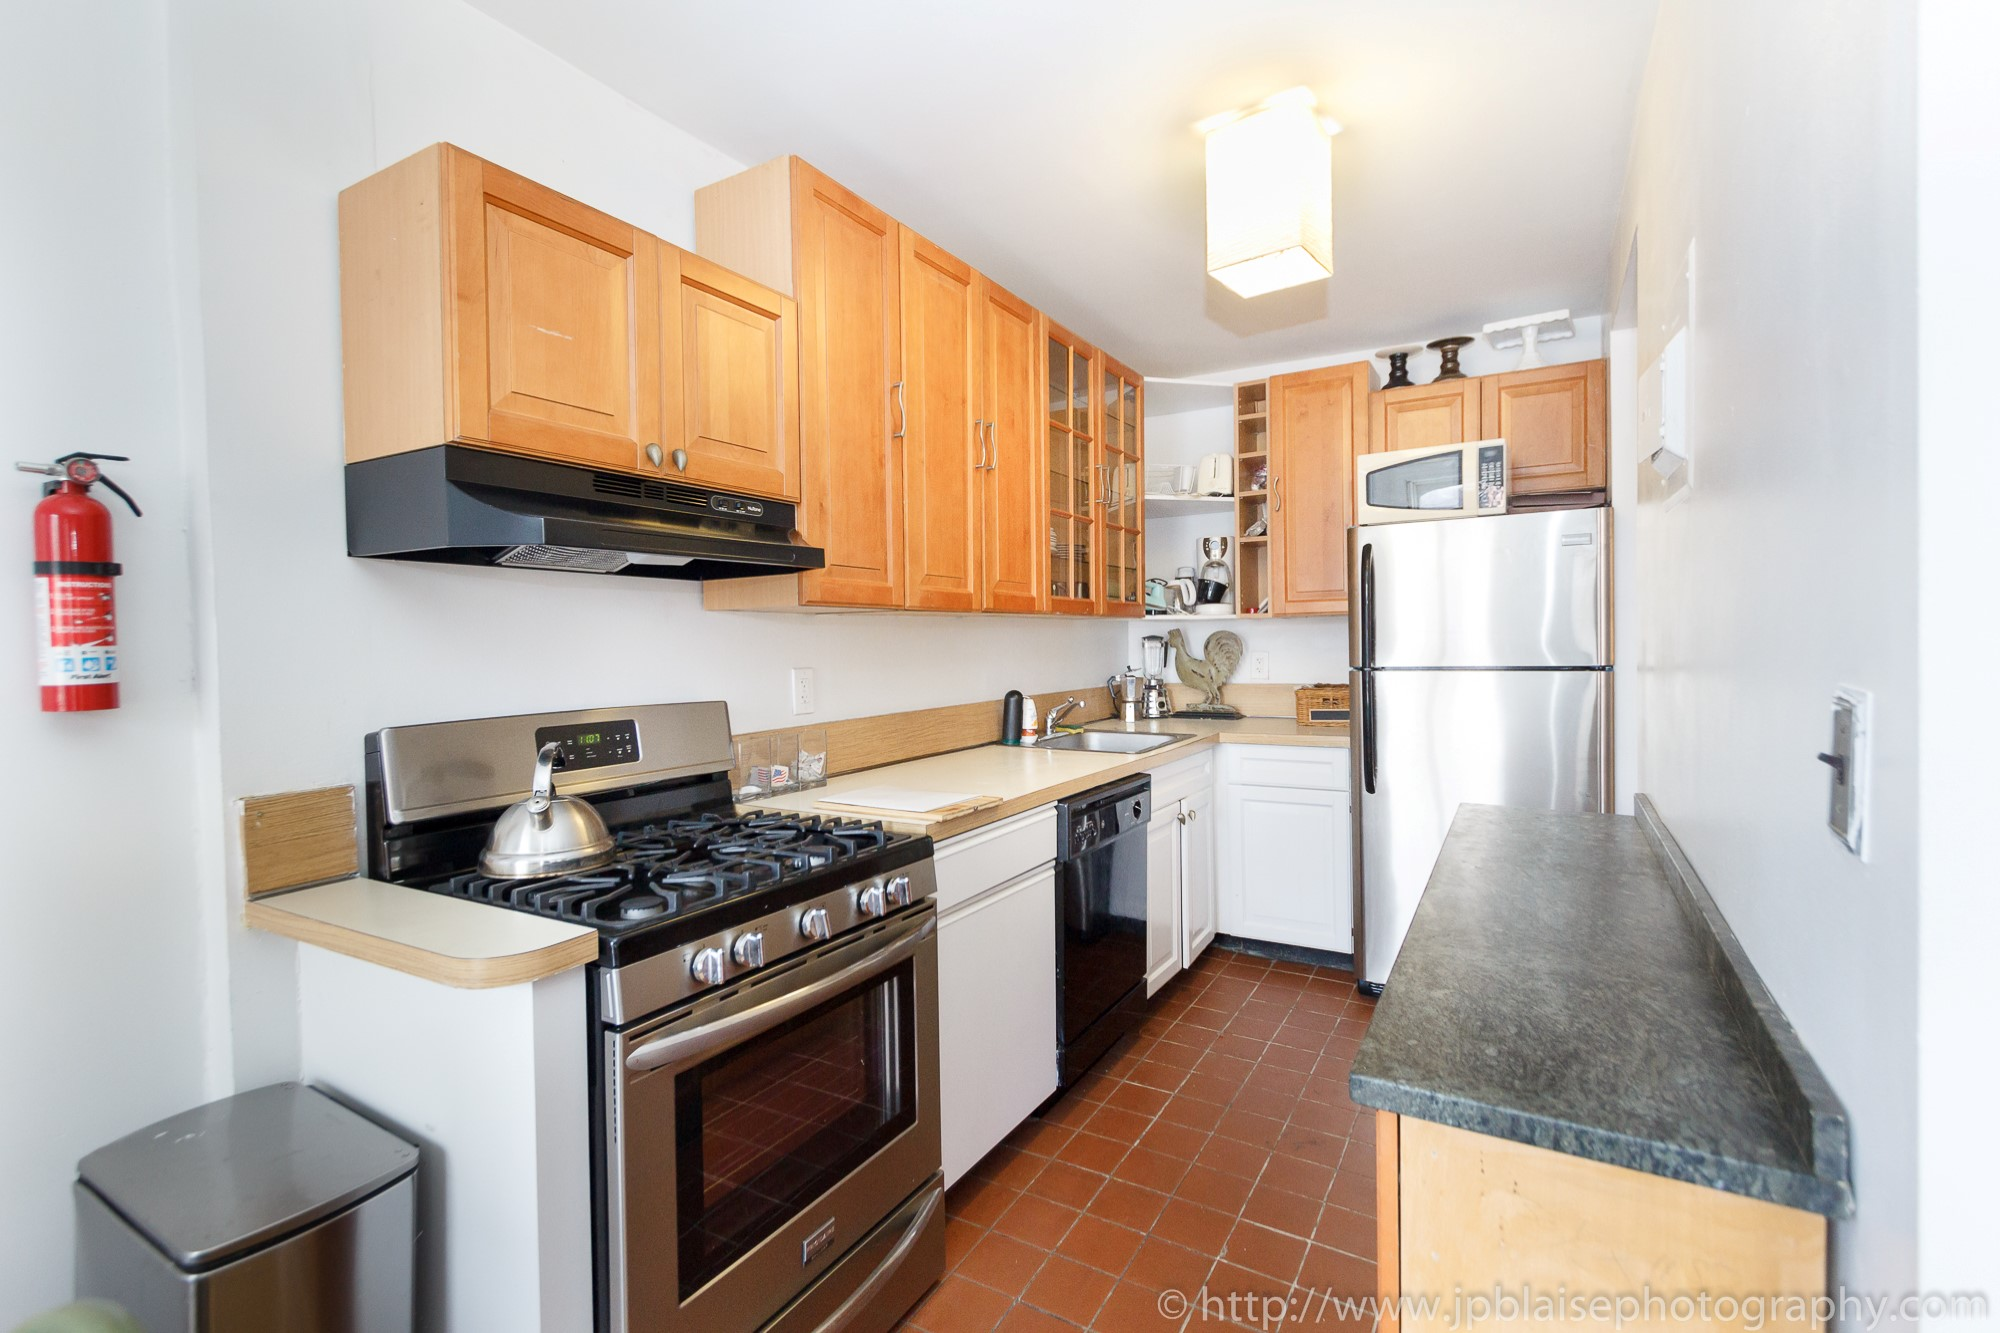 nyc apartment photographer one bedroom fort greene brooklyn new york city kitchen